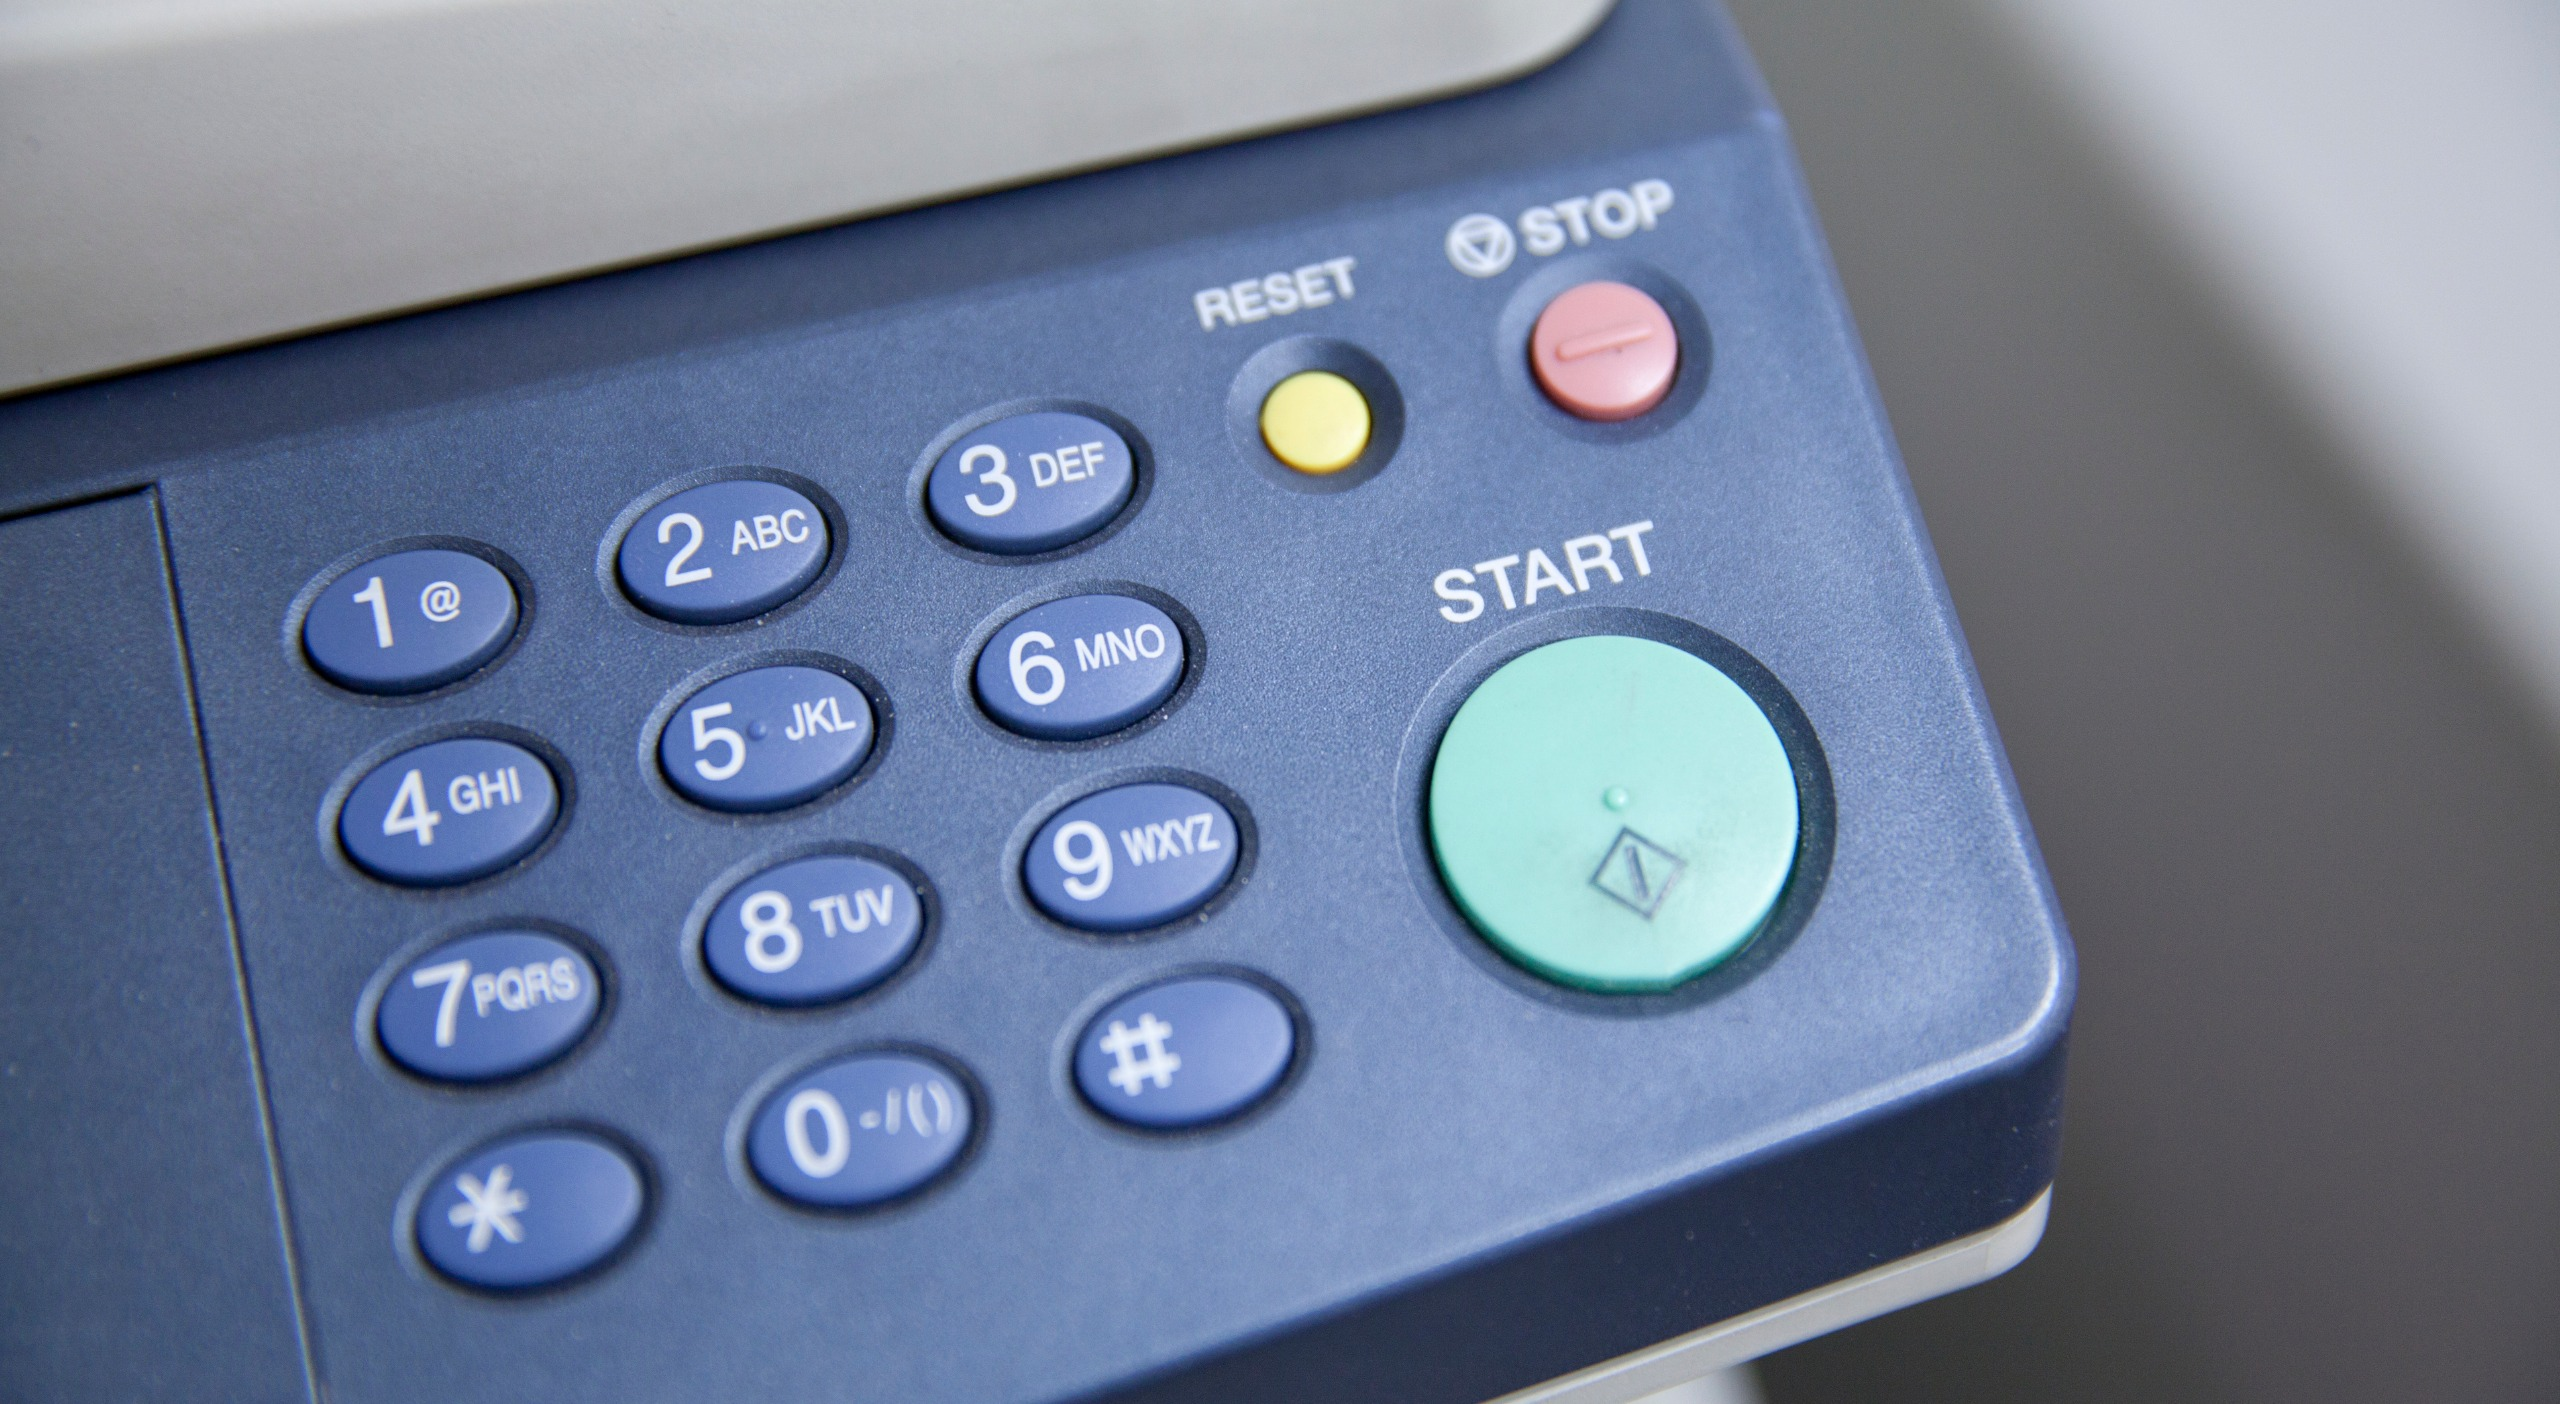 How To Reset A Brother Printer Quick Guide